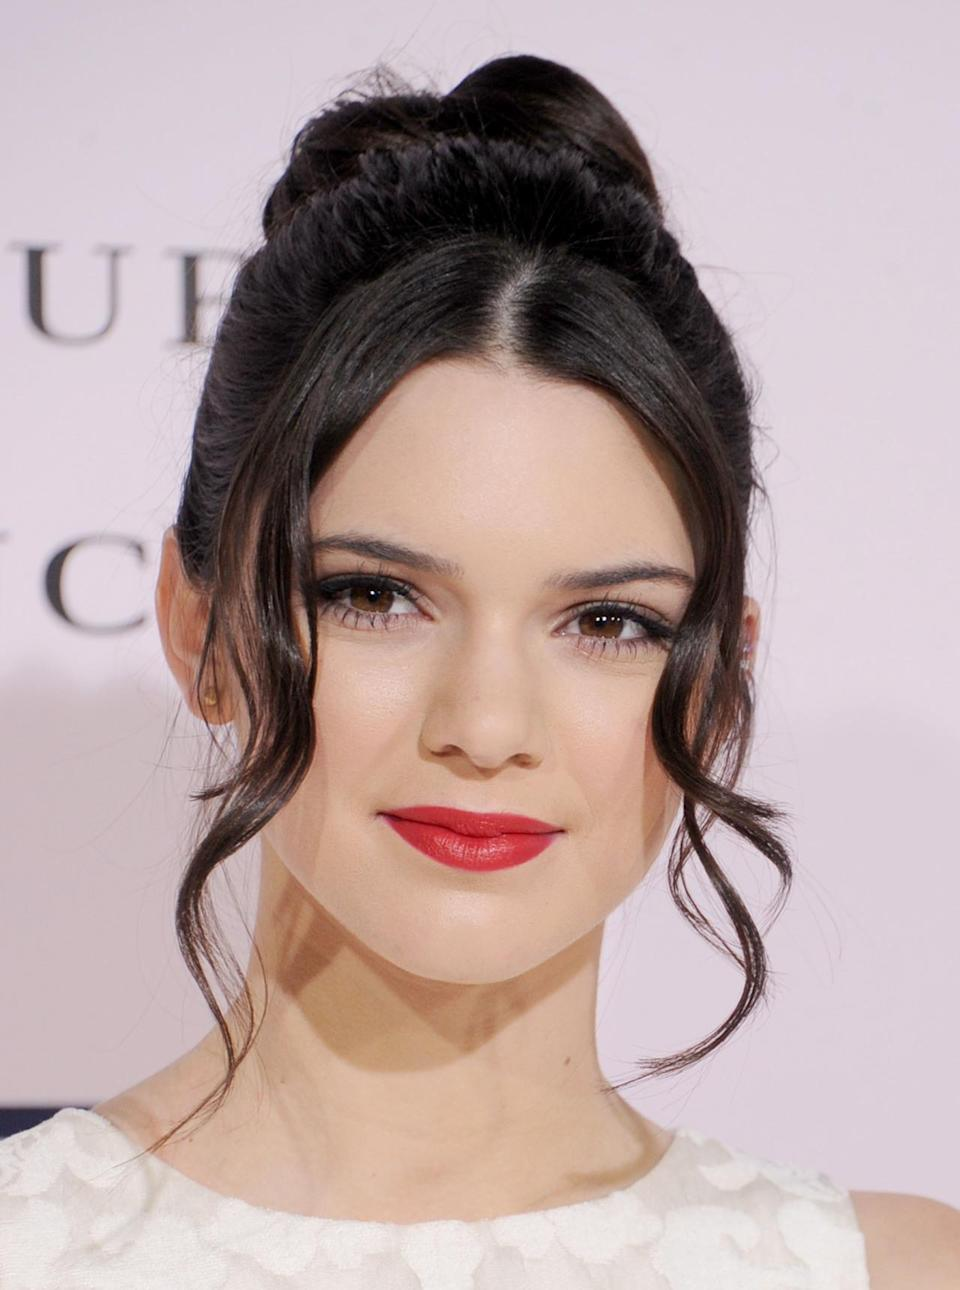 <p>At the premiere of the film, <i>The Vow</i>, in Los Angeles, Jenner dolled up in cherry red lips and an easy-breezy updo with loose tresses framing her cheeks. <i>(Photo: Getty Images)</i></p>